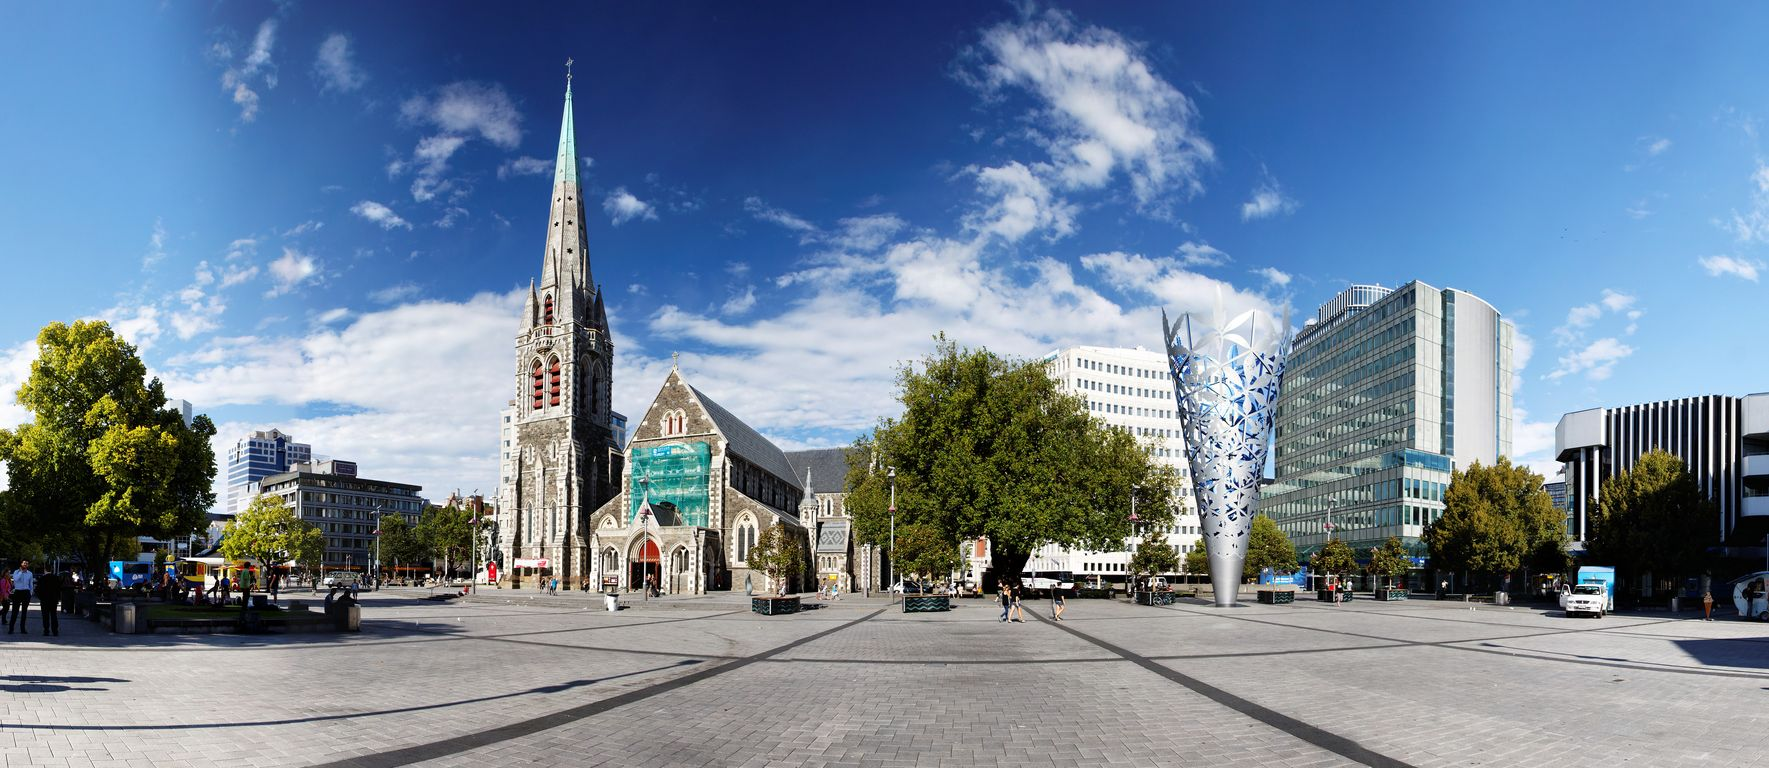 Christchurch Video: Top 5 Christchurch Attractions